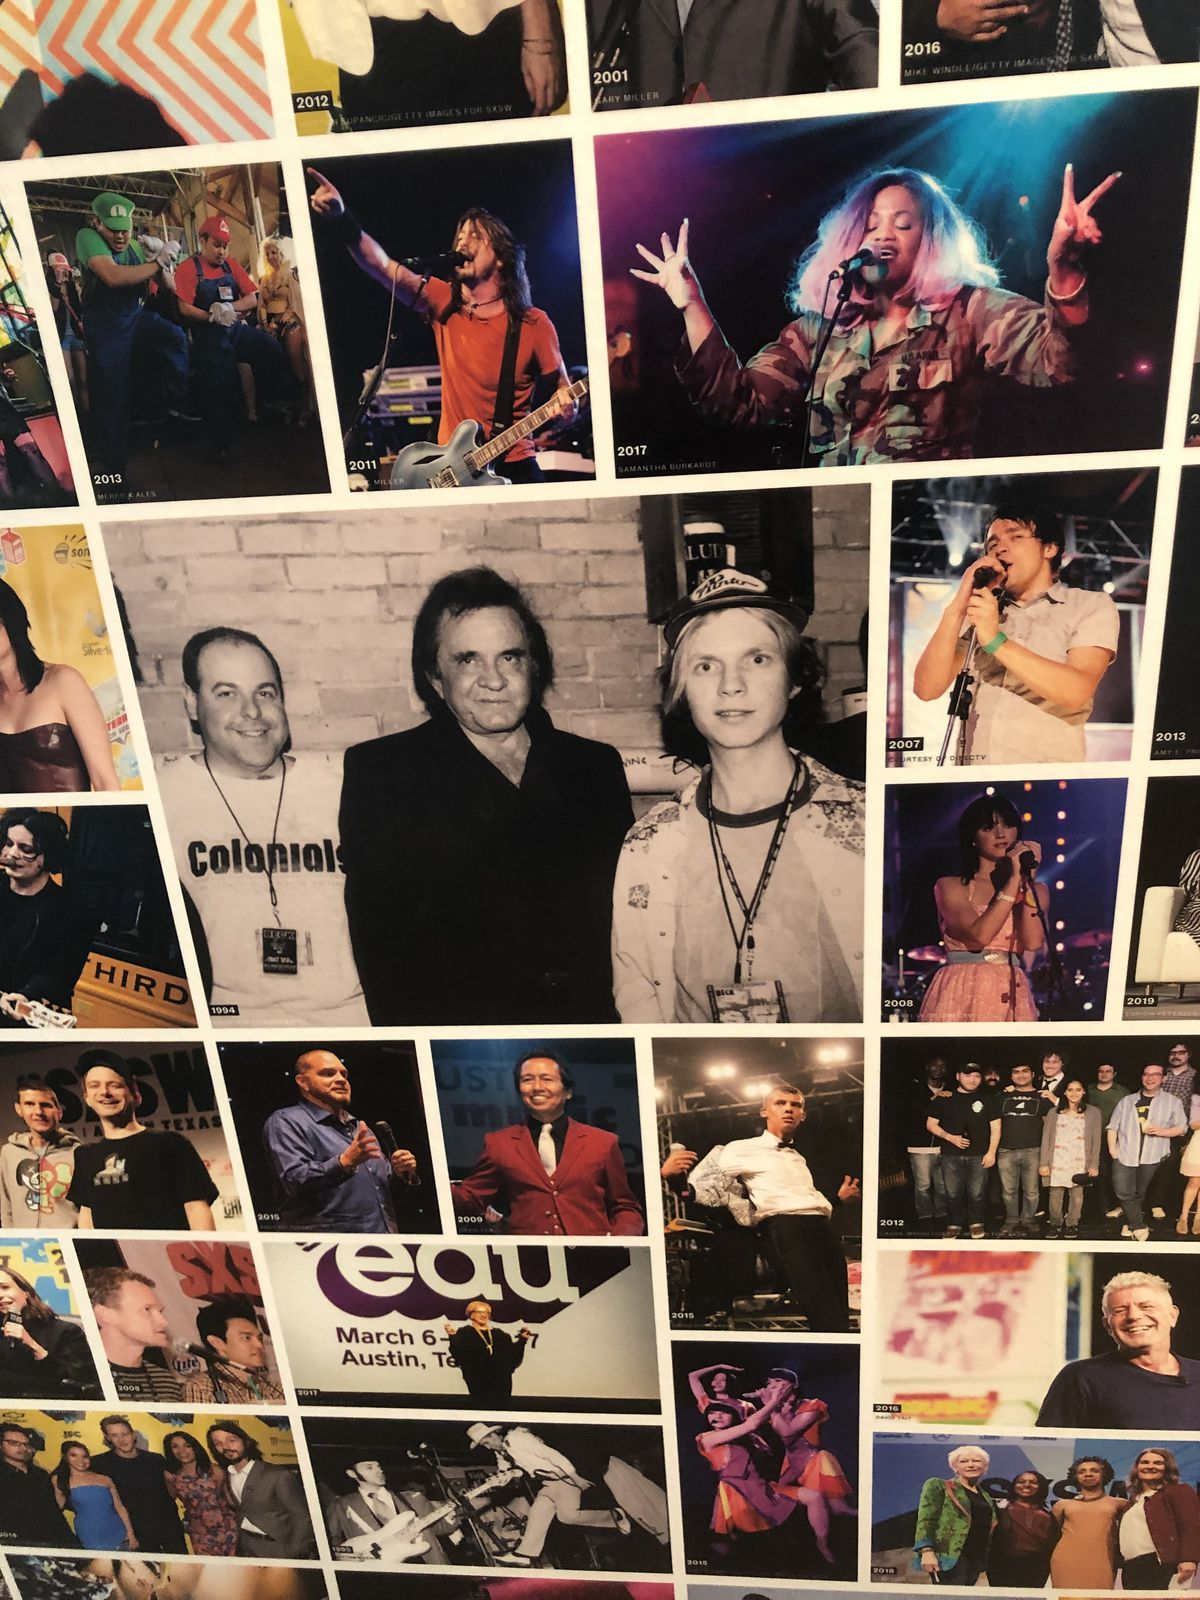 Photo montage of Johny Cash and other musicians